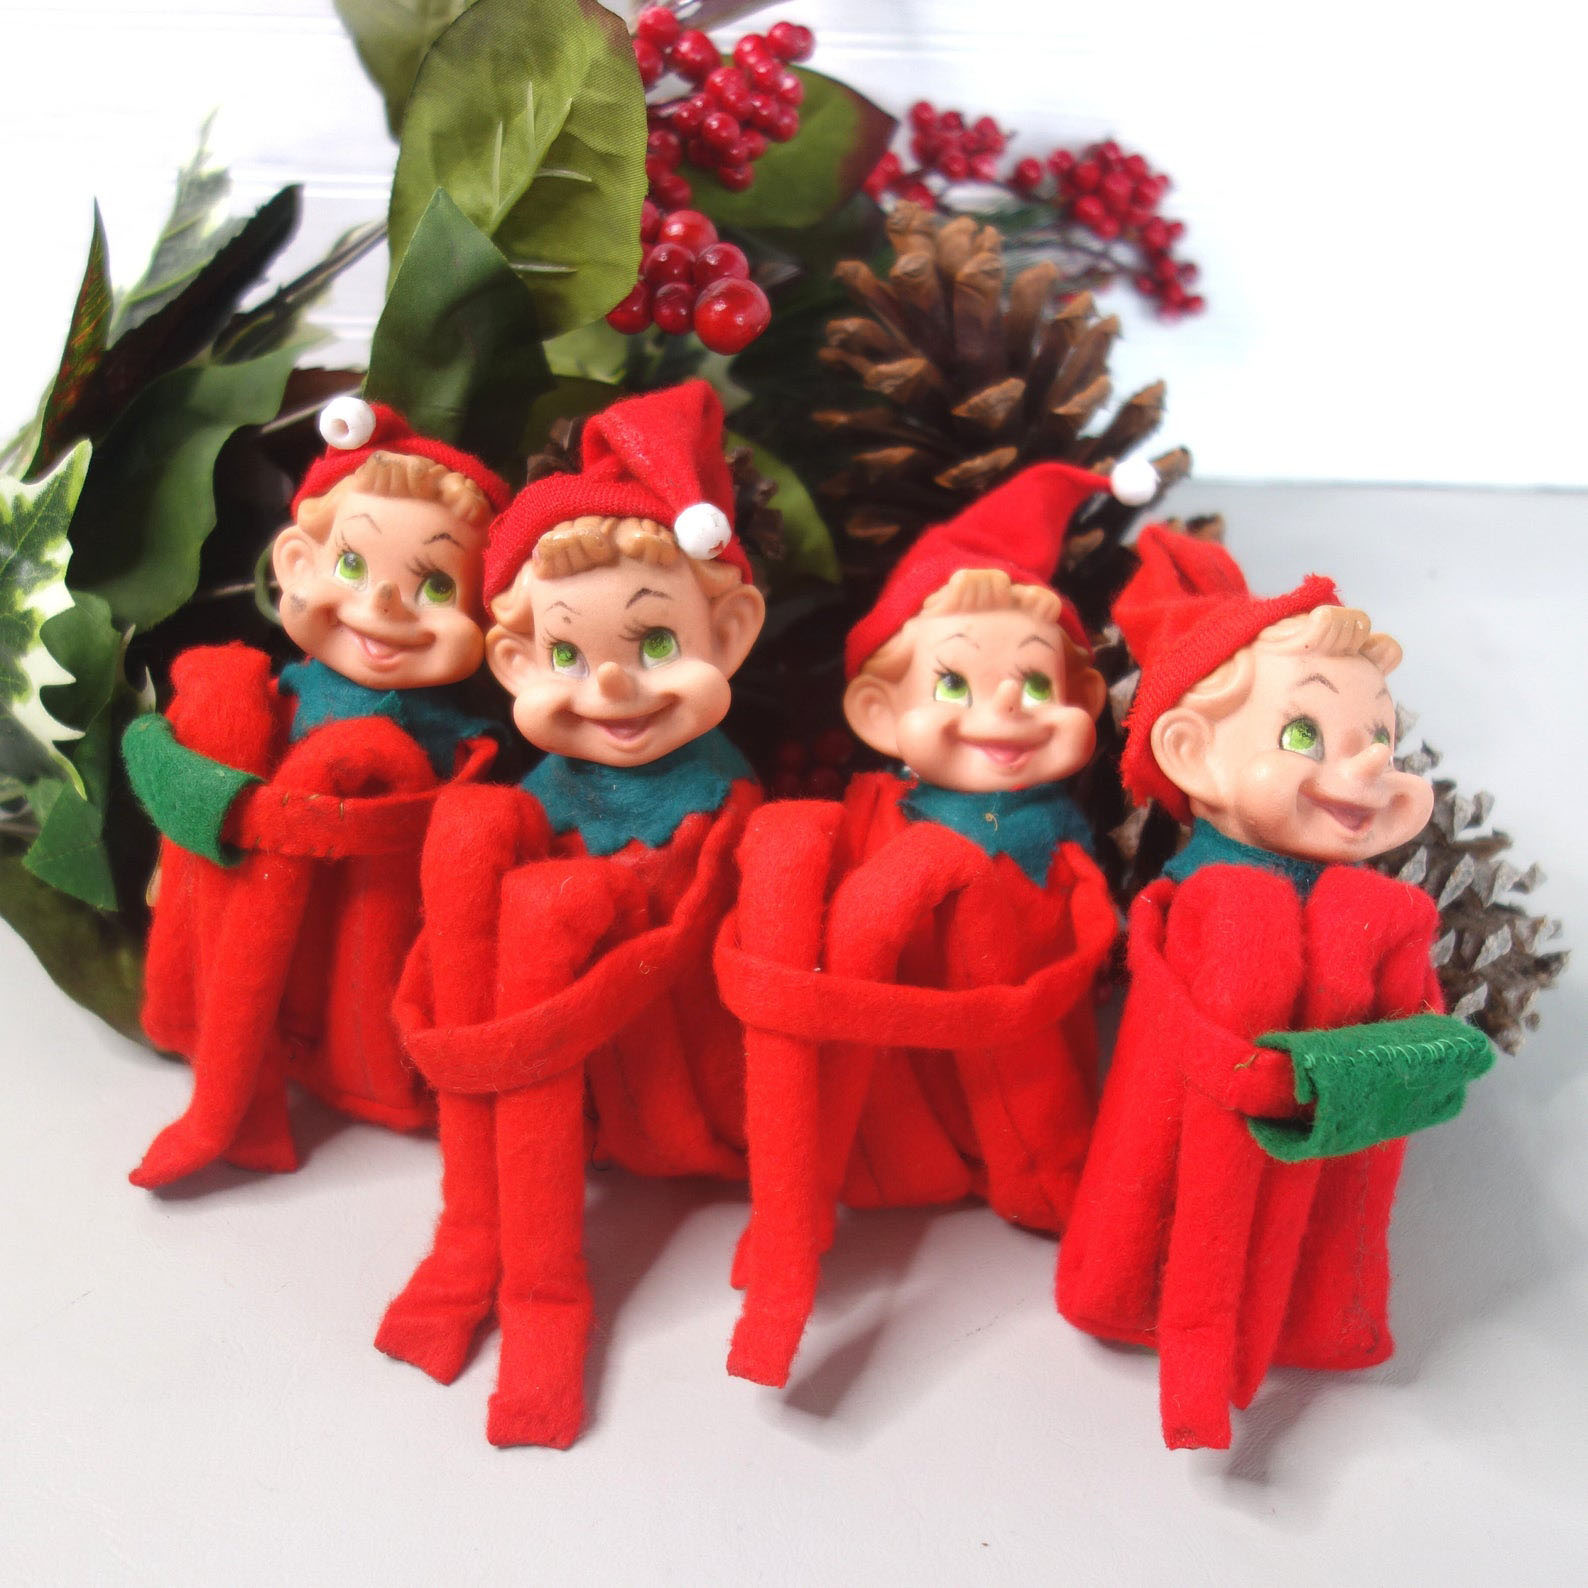 Knee-Hugger Elves